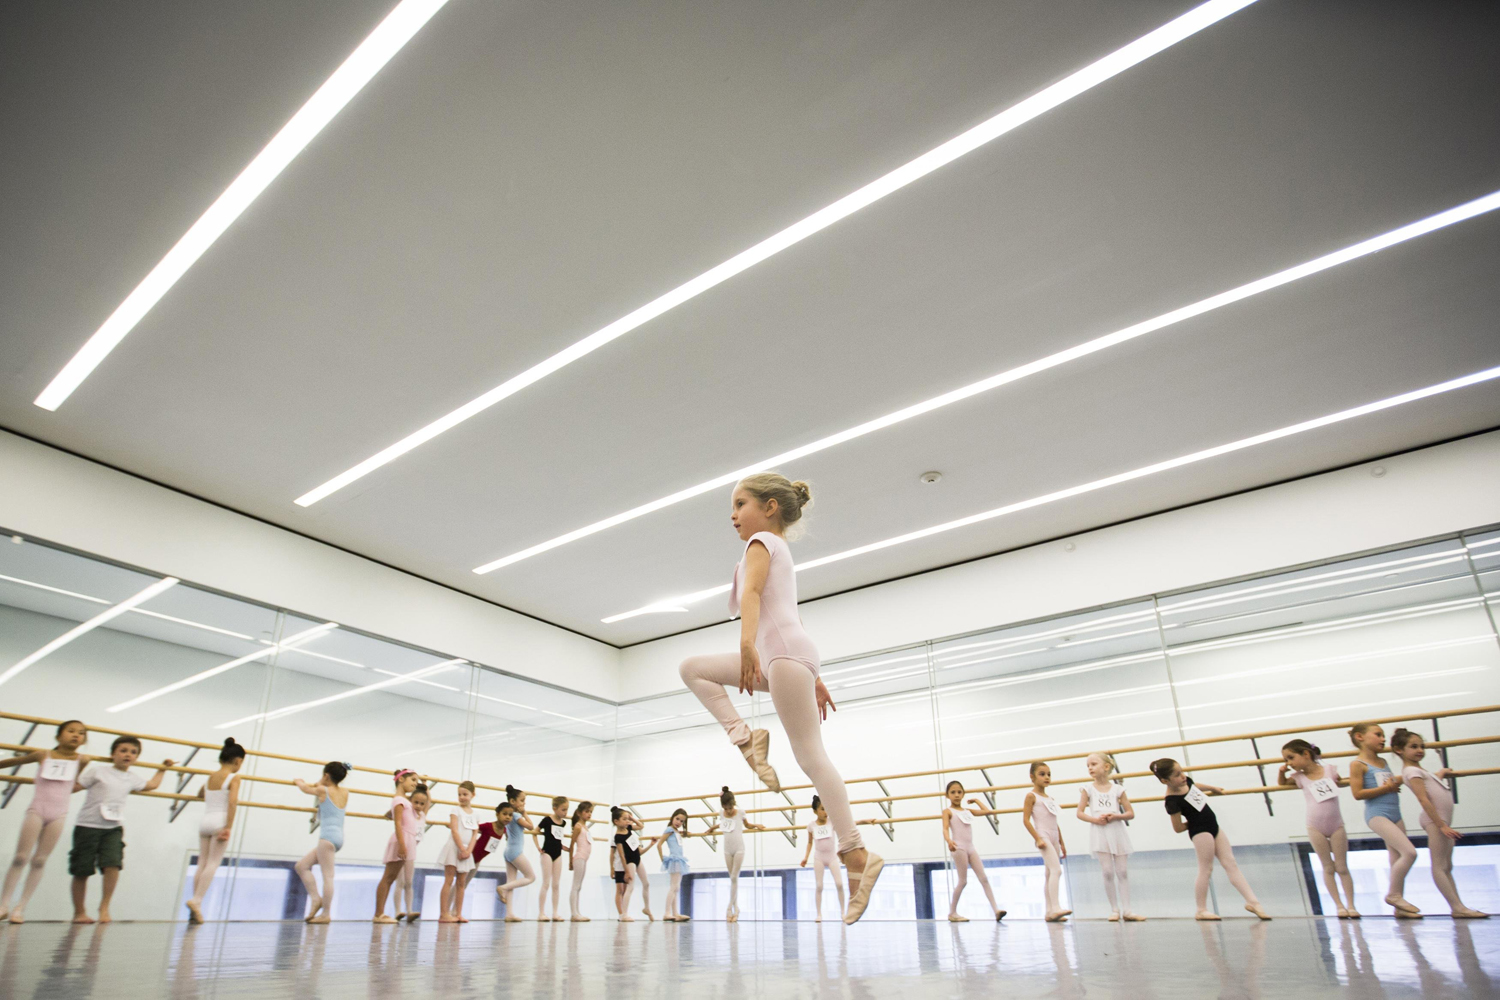 Children watch as a girl dances during an audition for the School of American Ballet in New York on April 25, 2014.